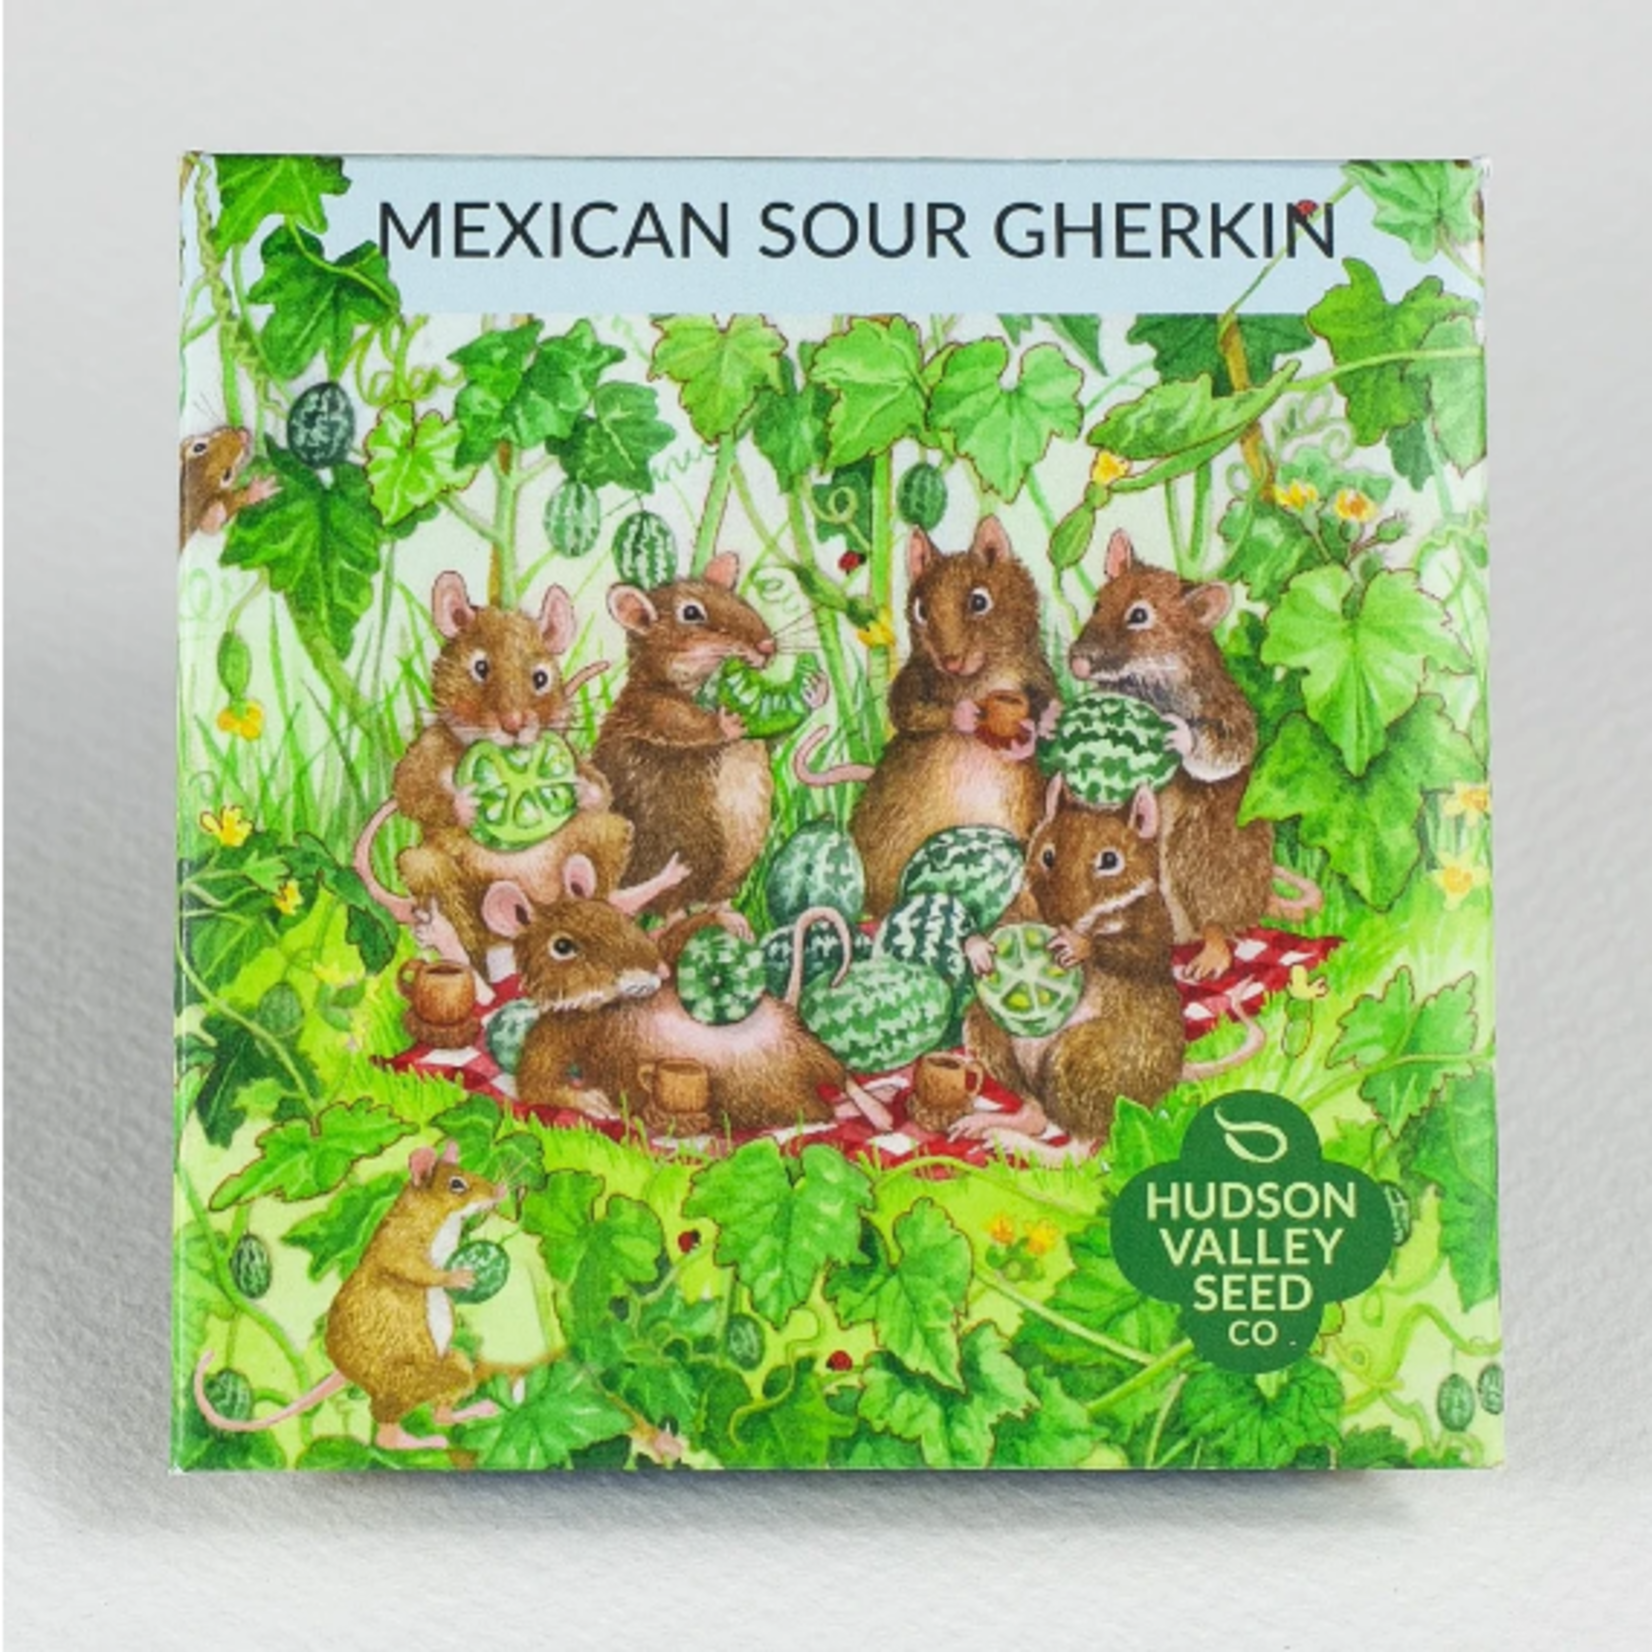 Hudson Valley Seeds Mexican Sour Gherkin Seeds